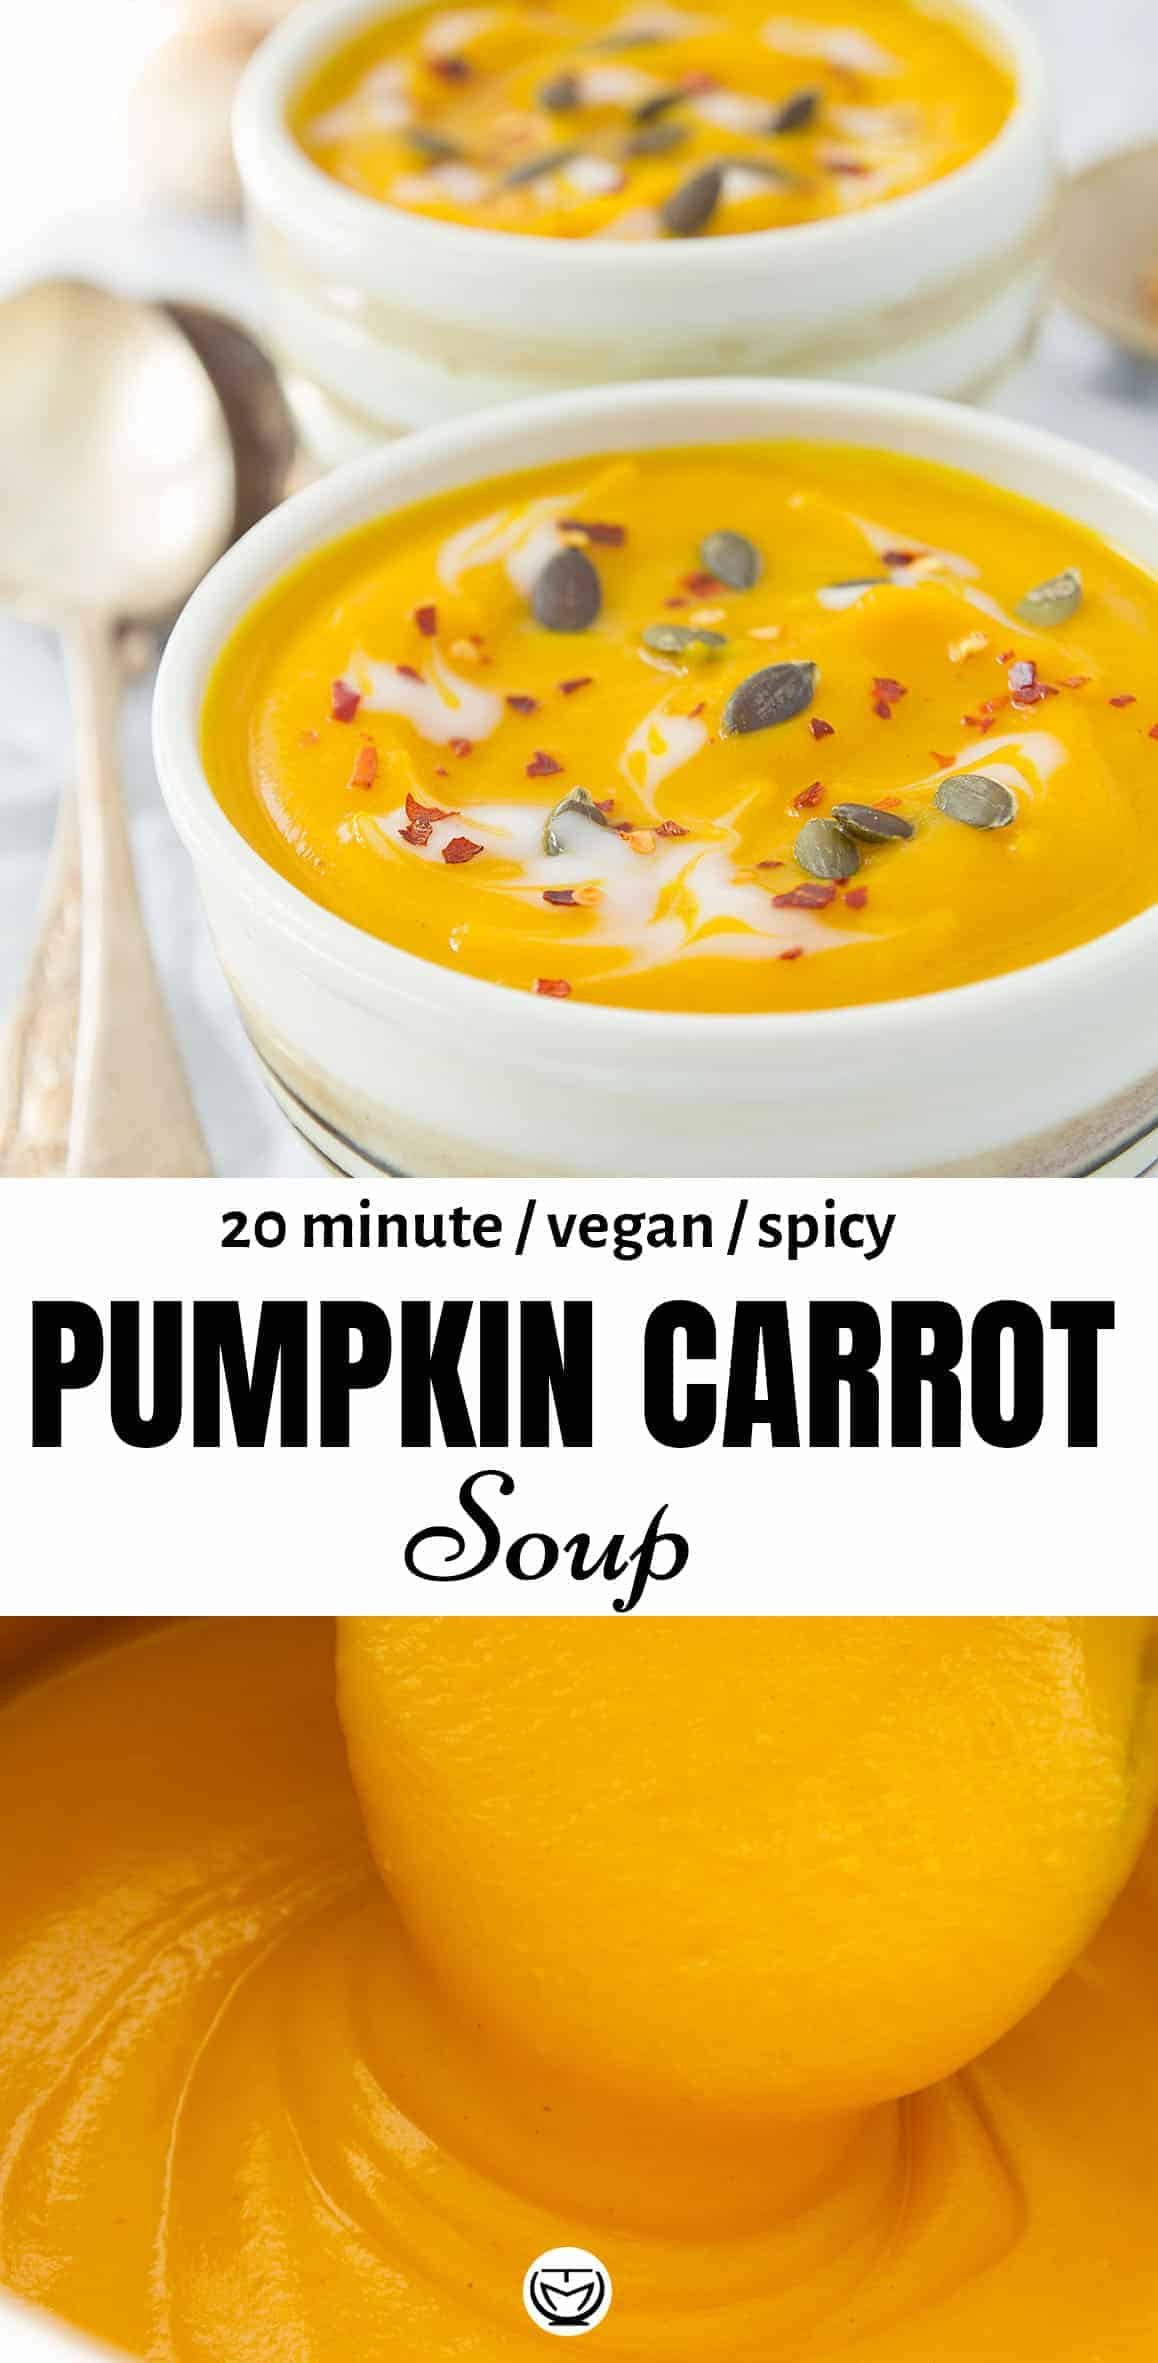 This silky and healthy spicy pumpkin carrot soup tastes delicious and comes together in 20 minutes!